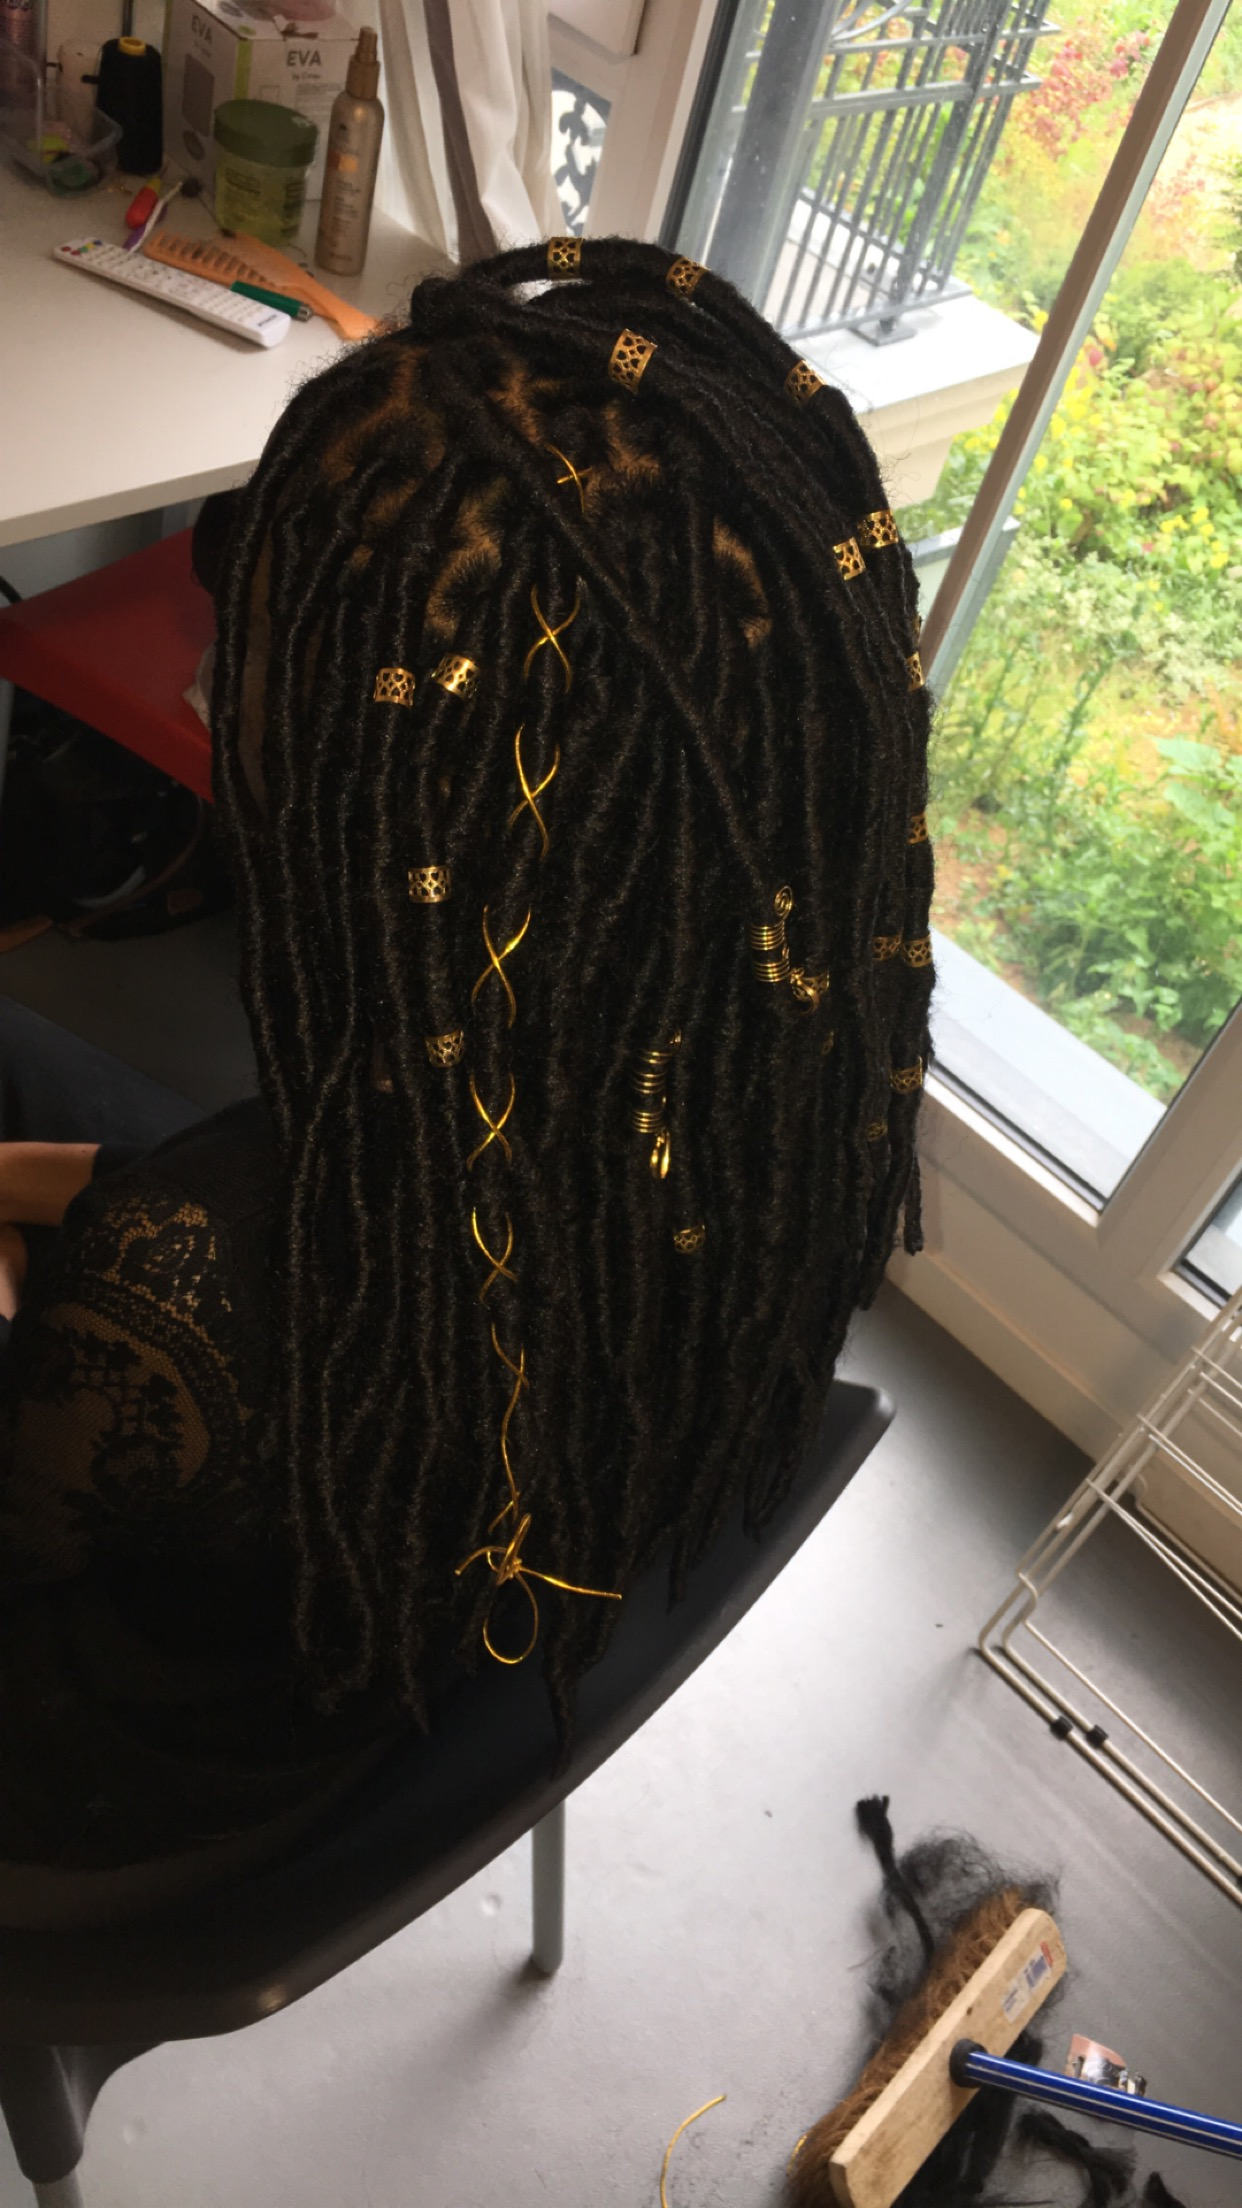 salon de coiffure afro tresse tresses box braids crochet braids vanilles tissages paris 75 77 78 91 92 93 94 95 DBDZUSGU